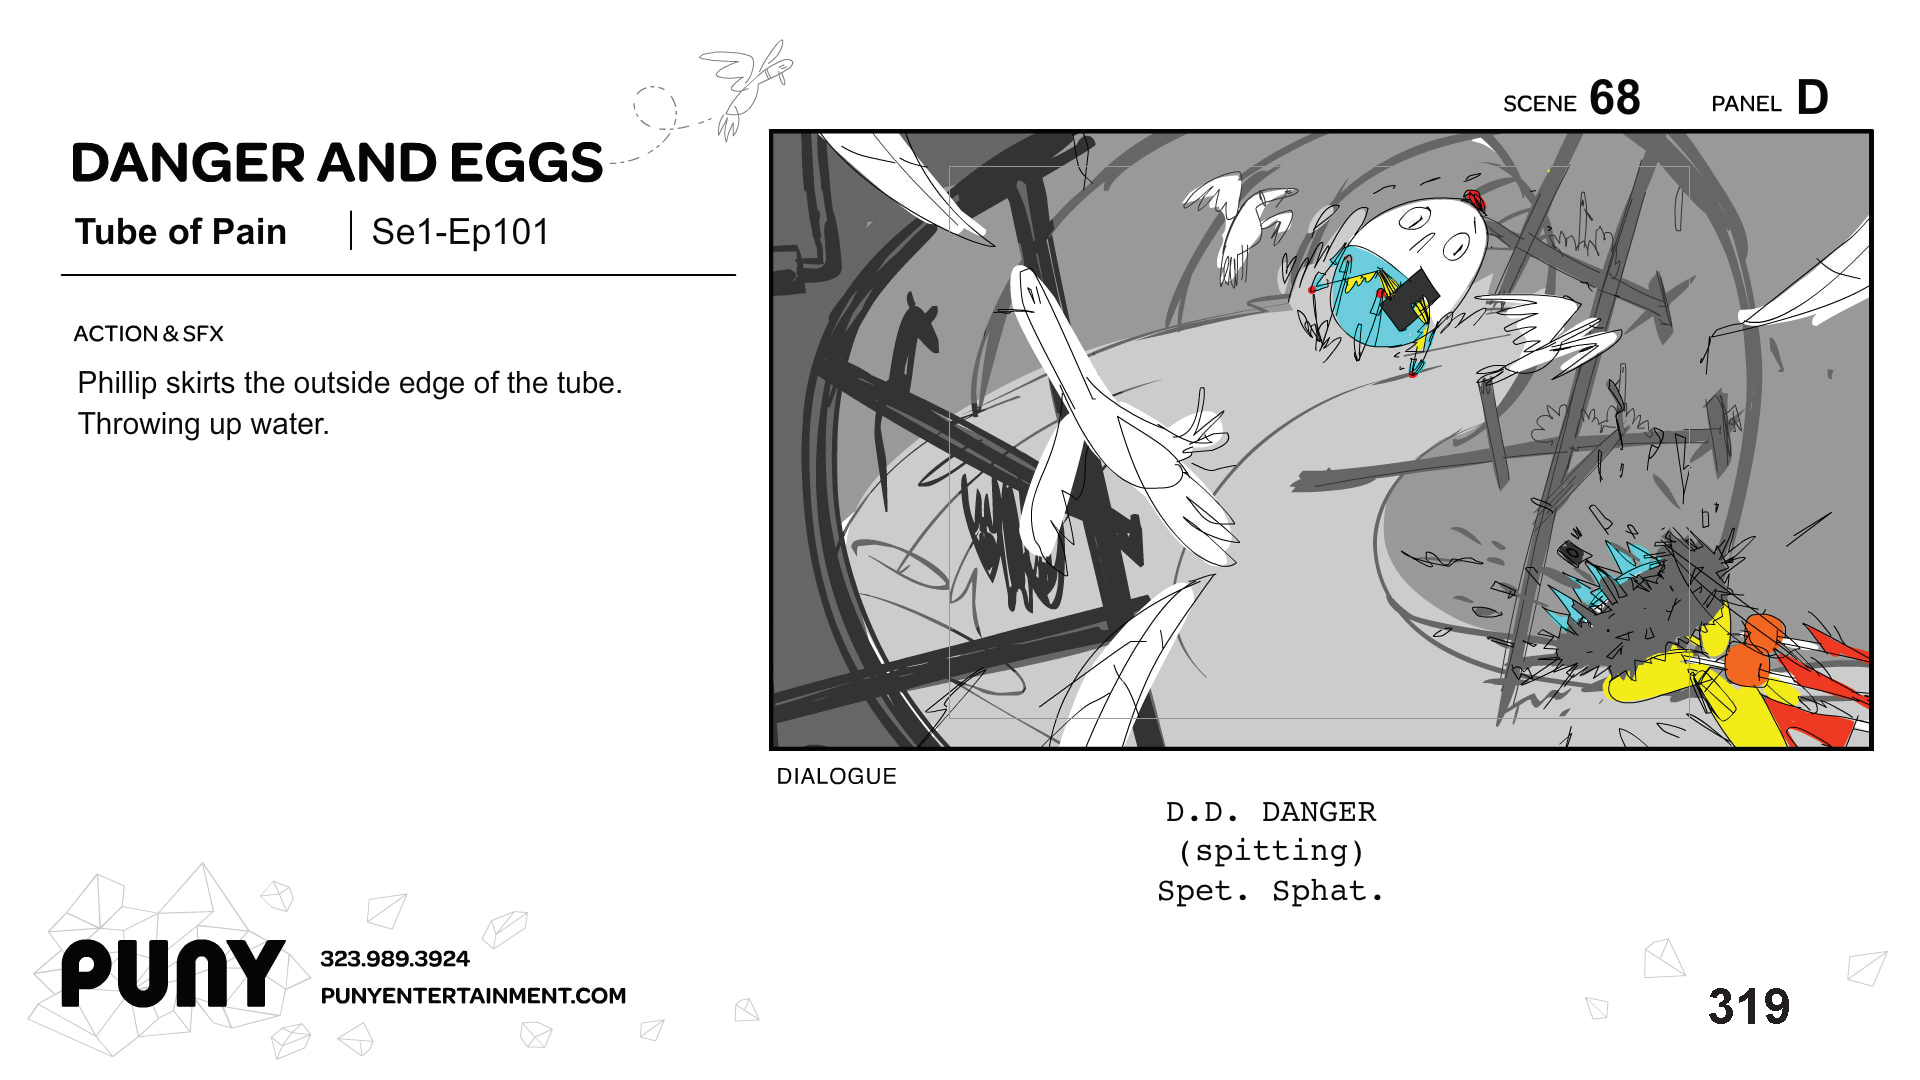 MikeOwens_STORYBOARDS_DangerAndEggs_Page_214.png